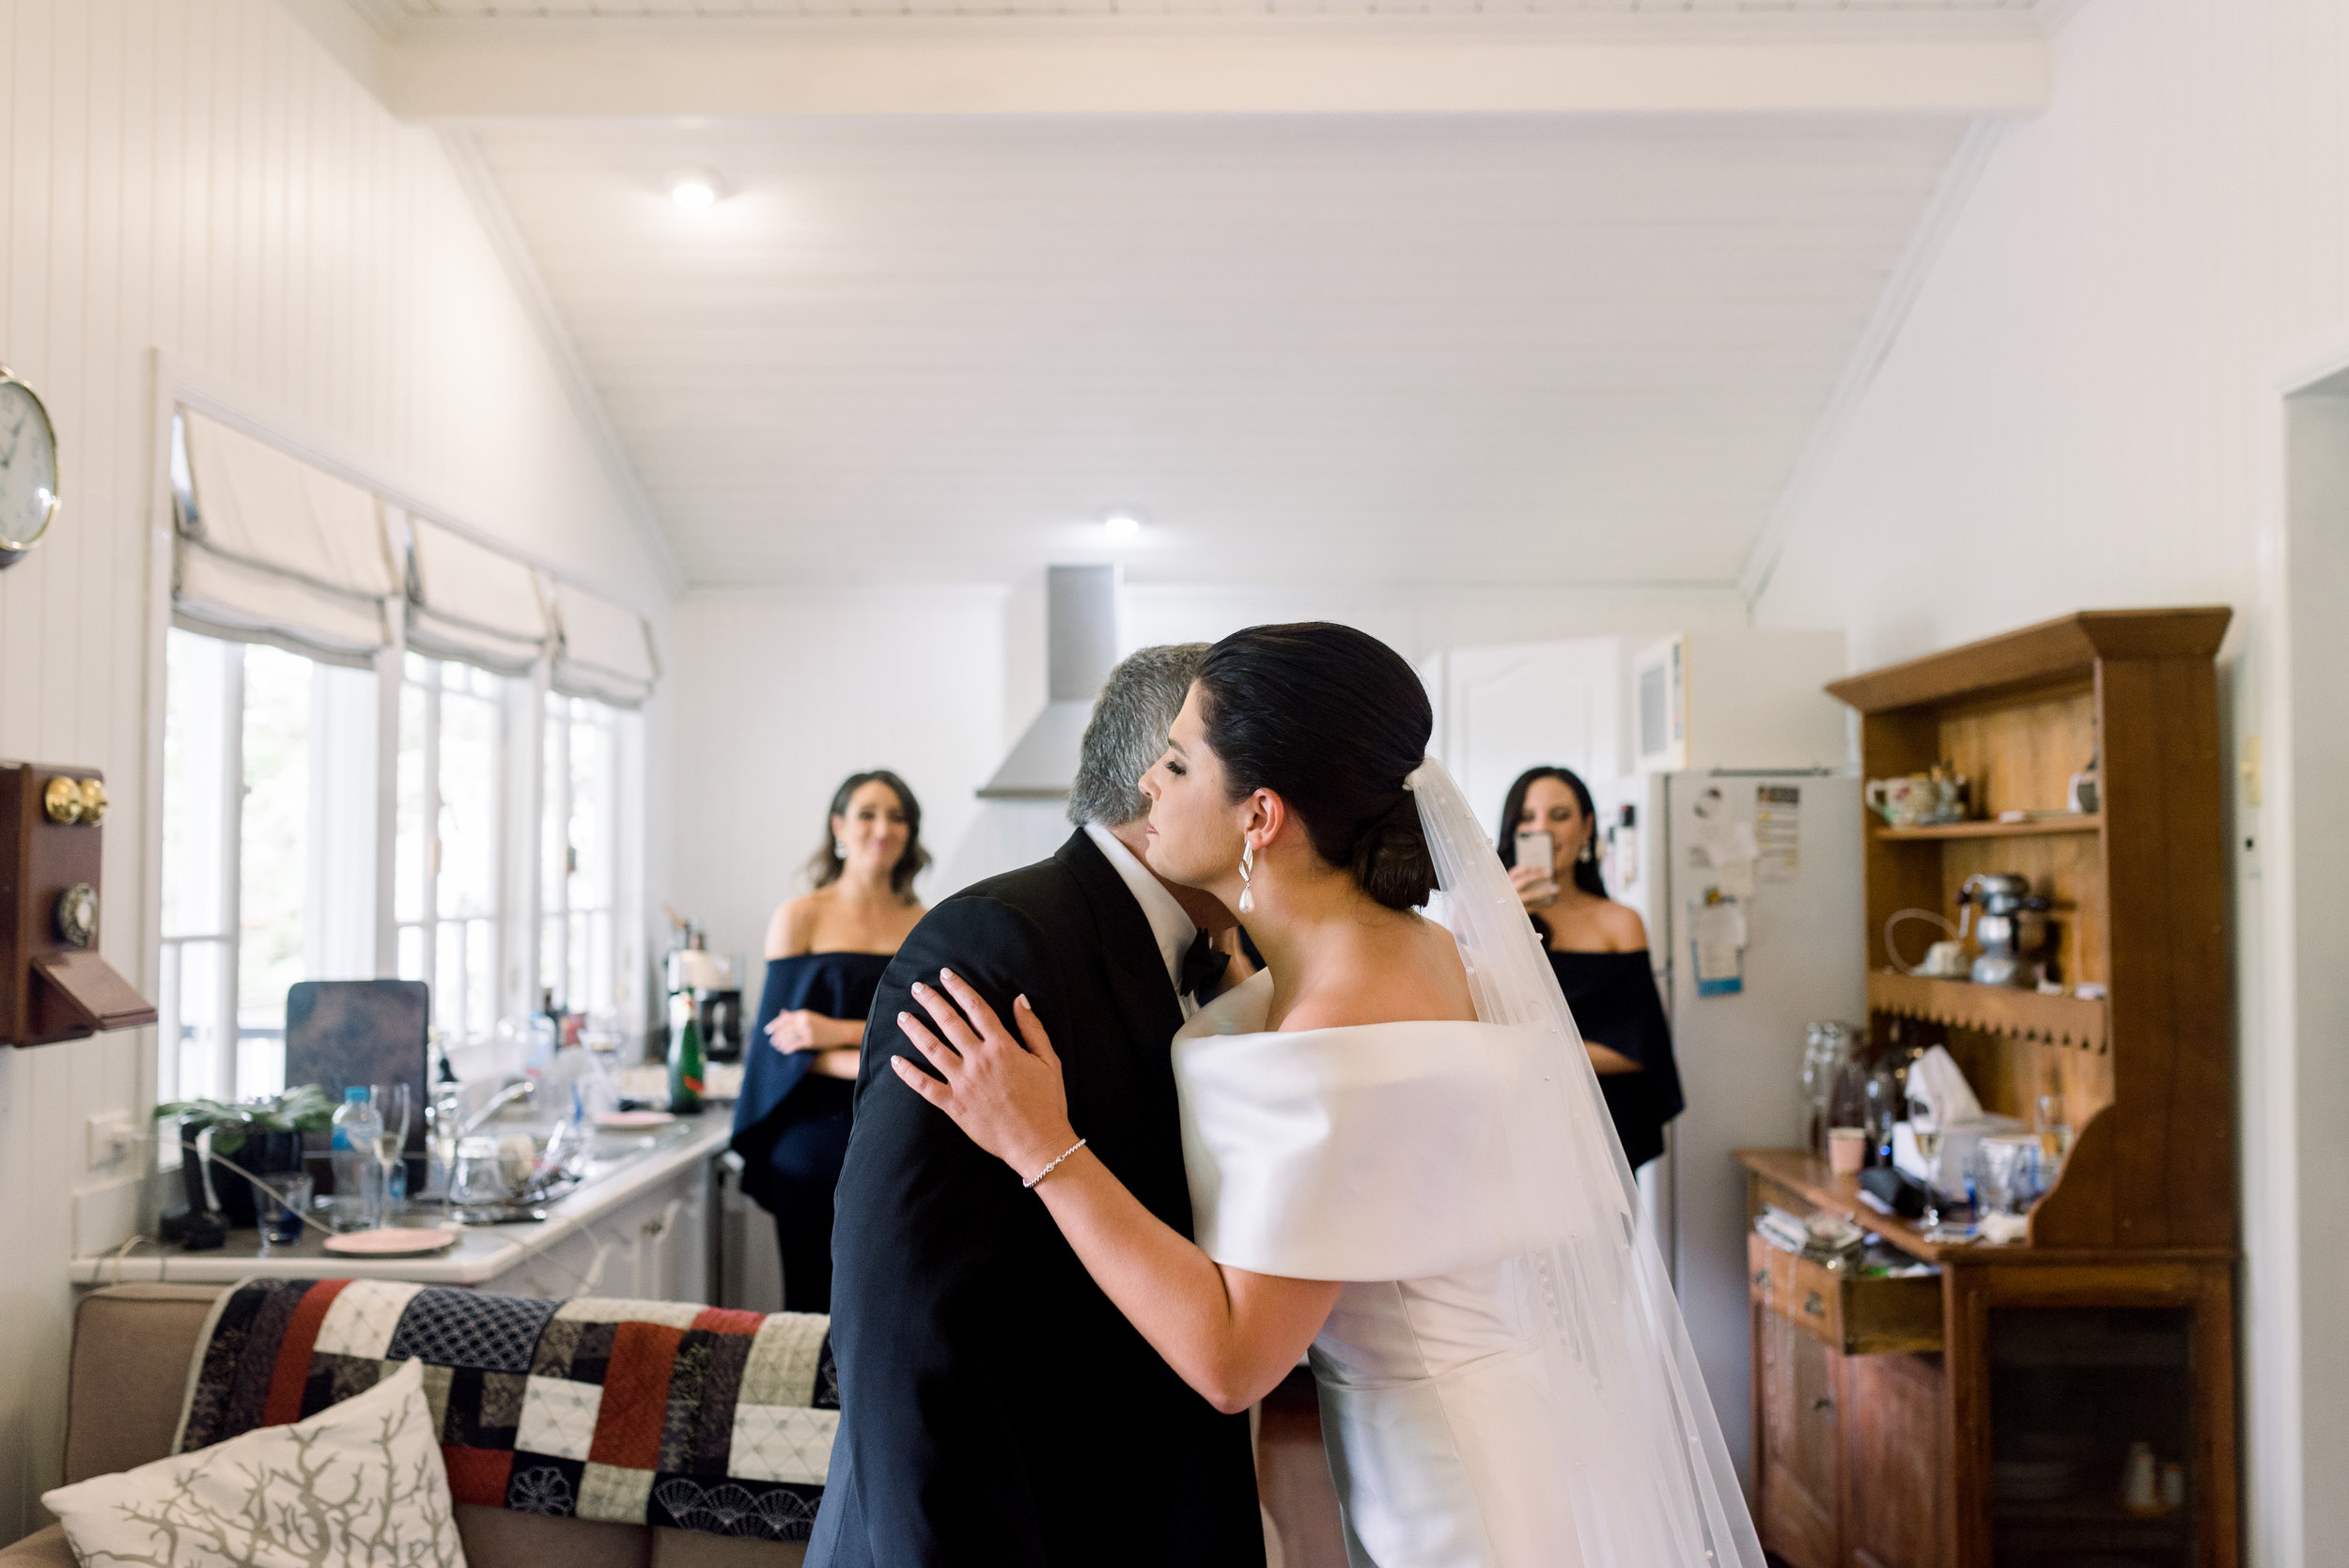 black-bird-brisbane-wedding-photography-film-photography-beautiful-reception-dance-candid-tweed-coast-wedding-29.jpg